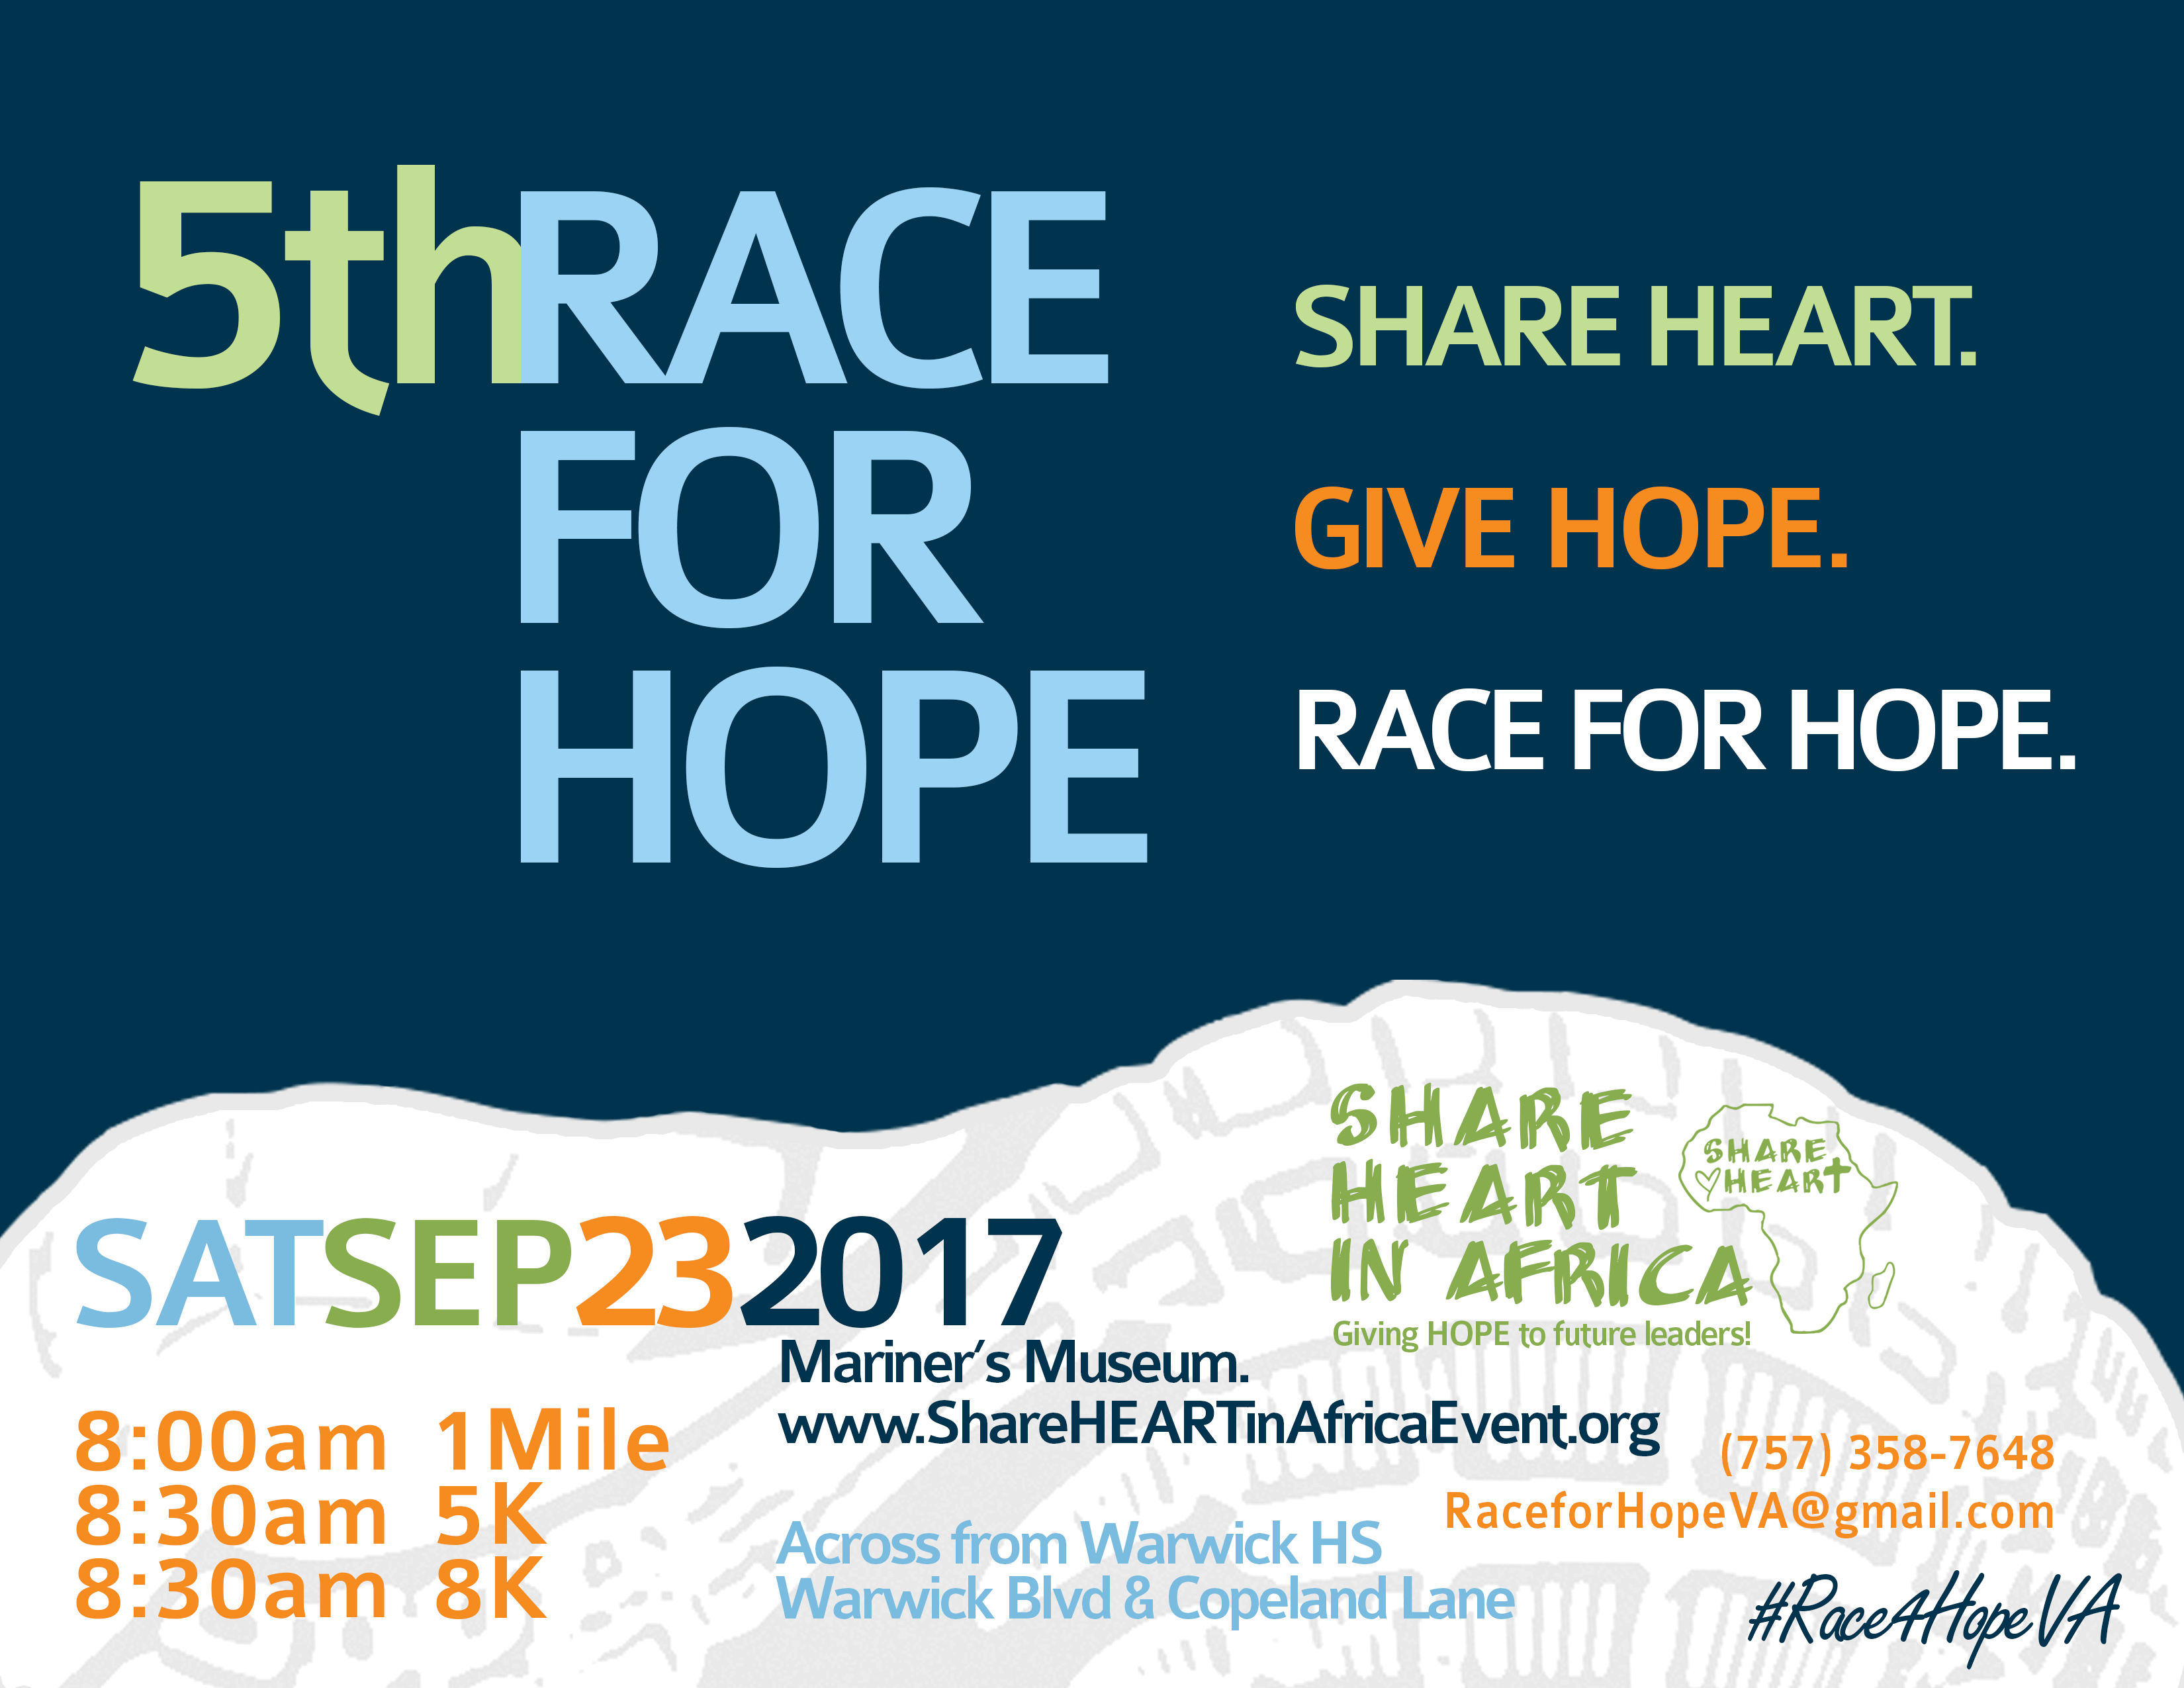 race-for-hope-8k-5k-1-mile-and-virtual-sponsor